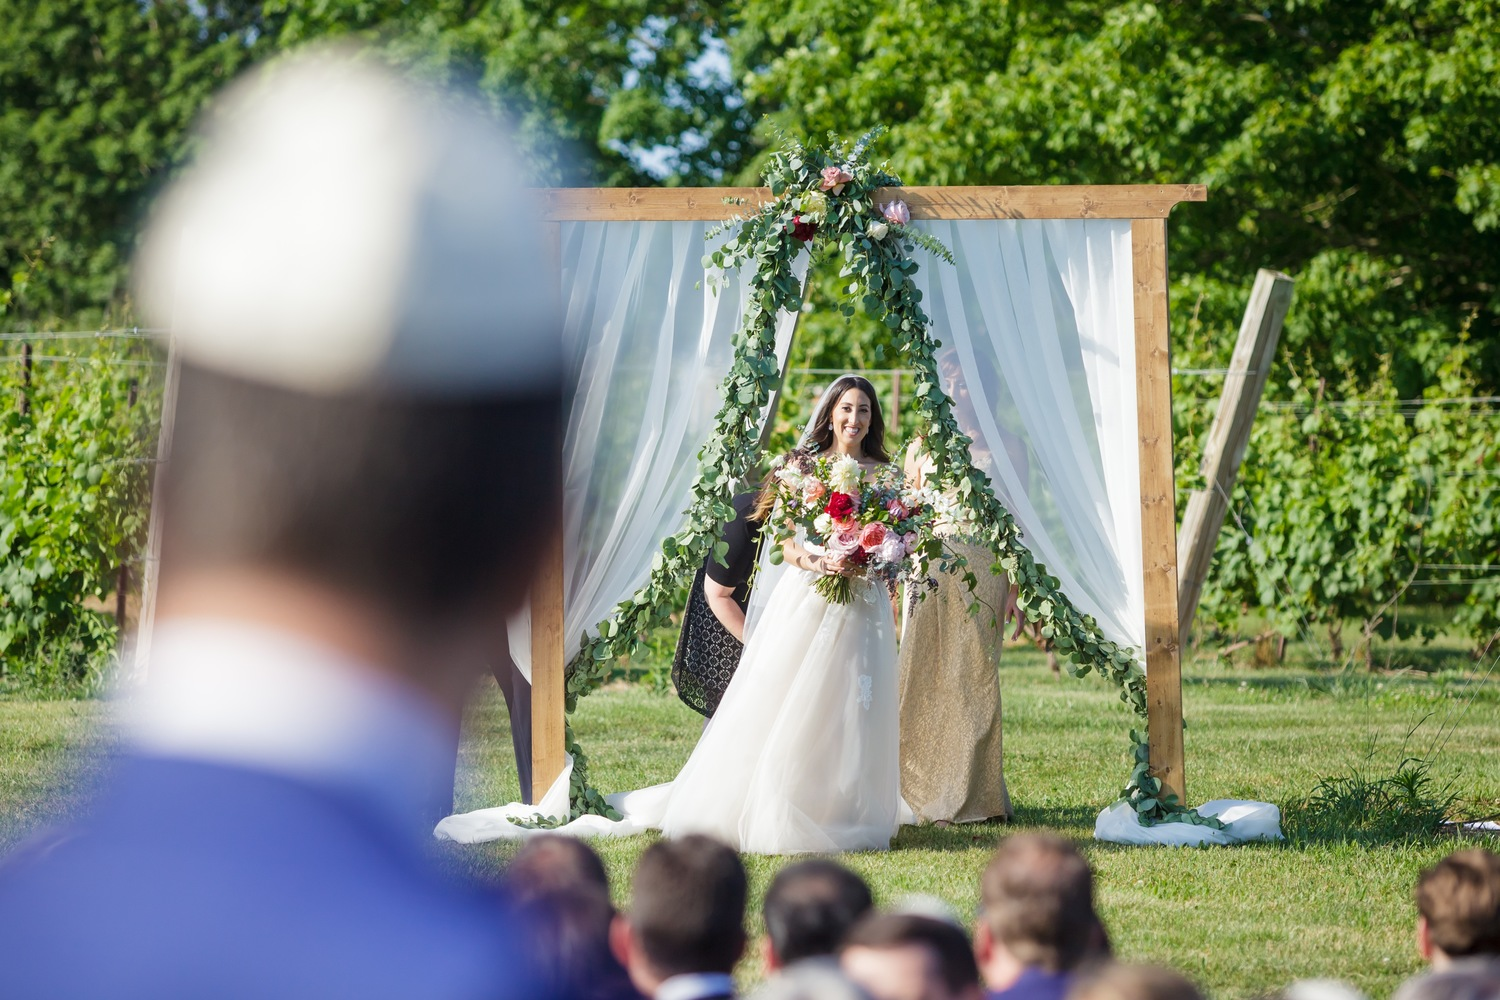 Preston Ridge Vineyard wedding bride bridal bouquet ceremony arbor green garland.jpg